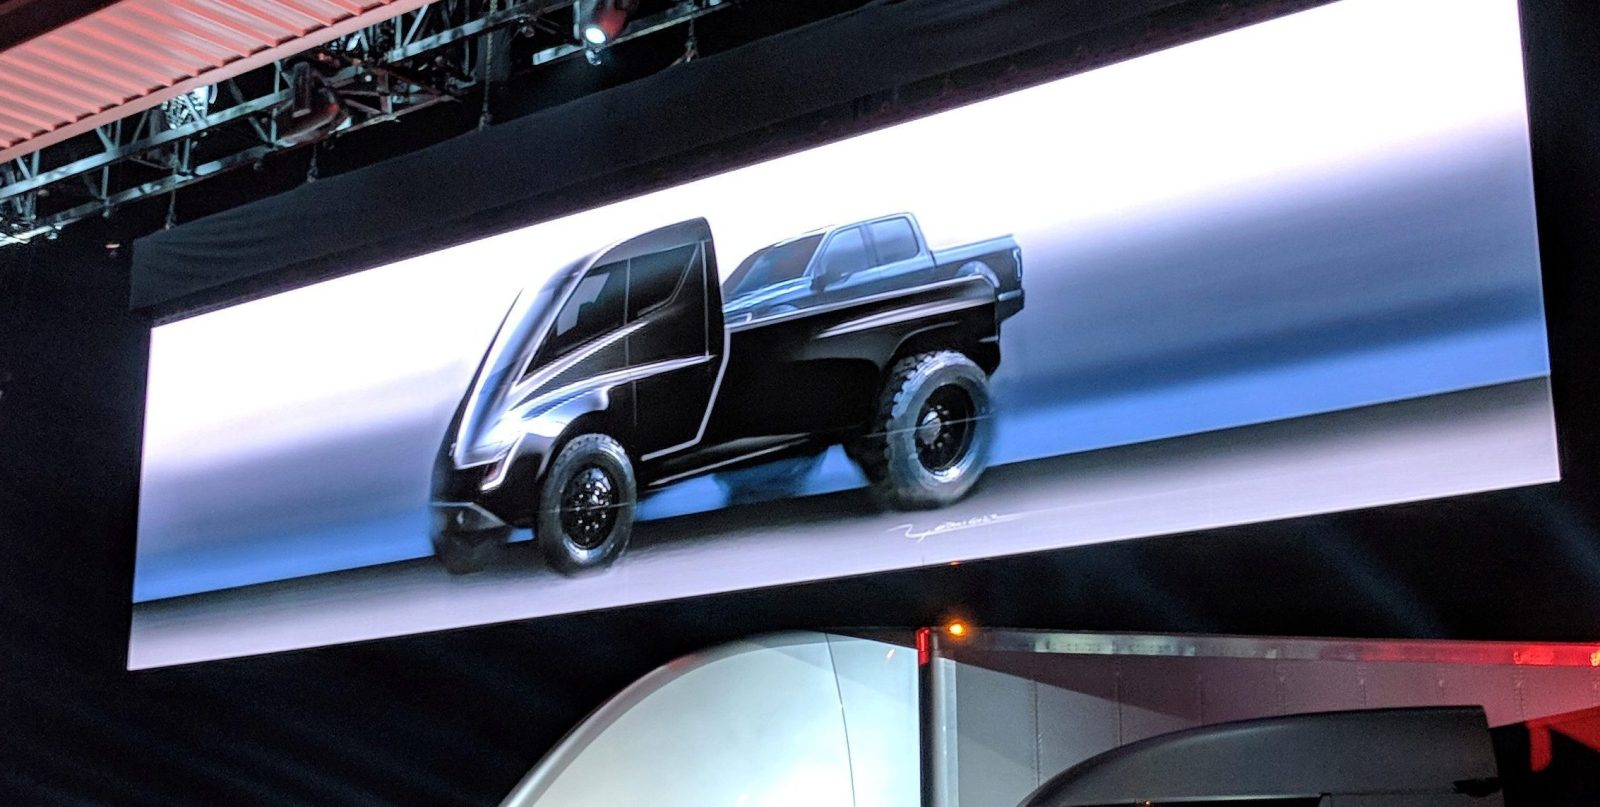 Tesla 'Cybertruck' pickup gets unveil date: Nov 21 in LA